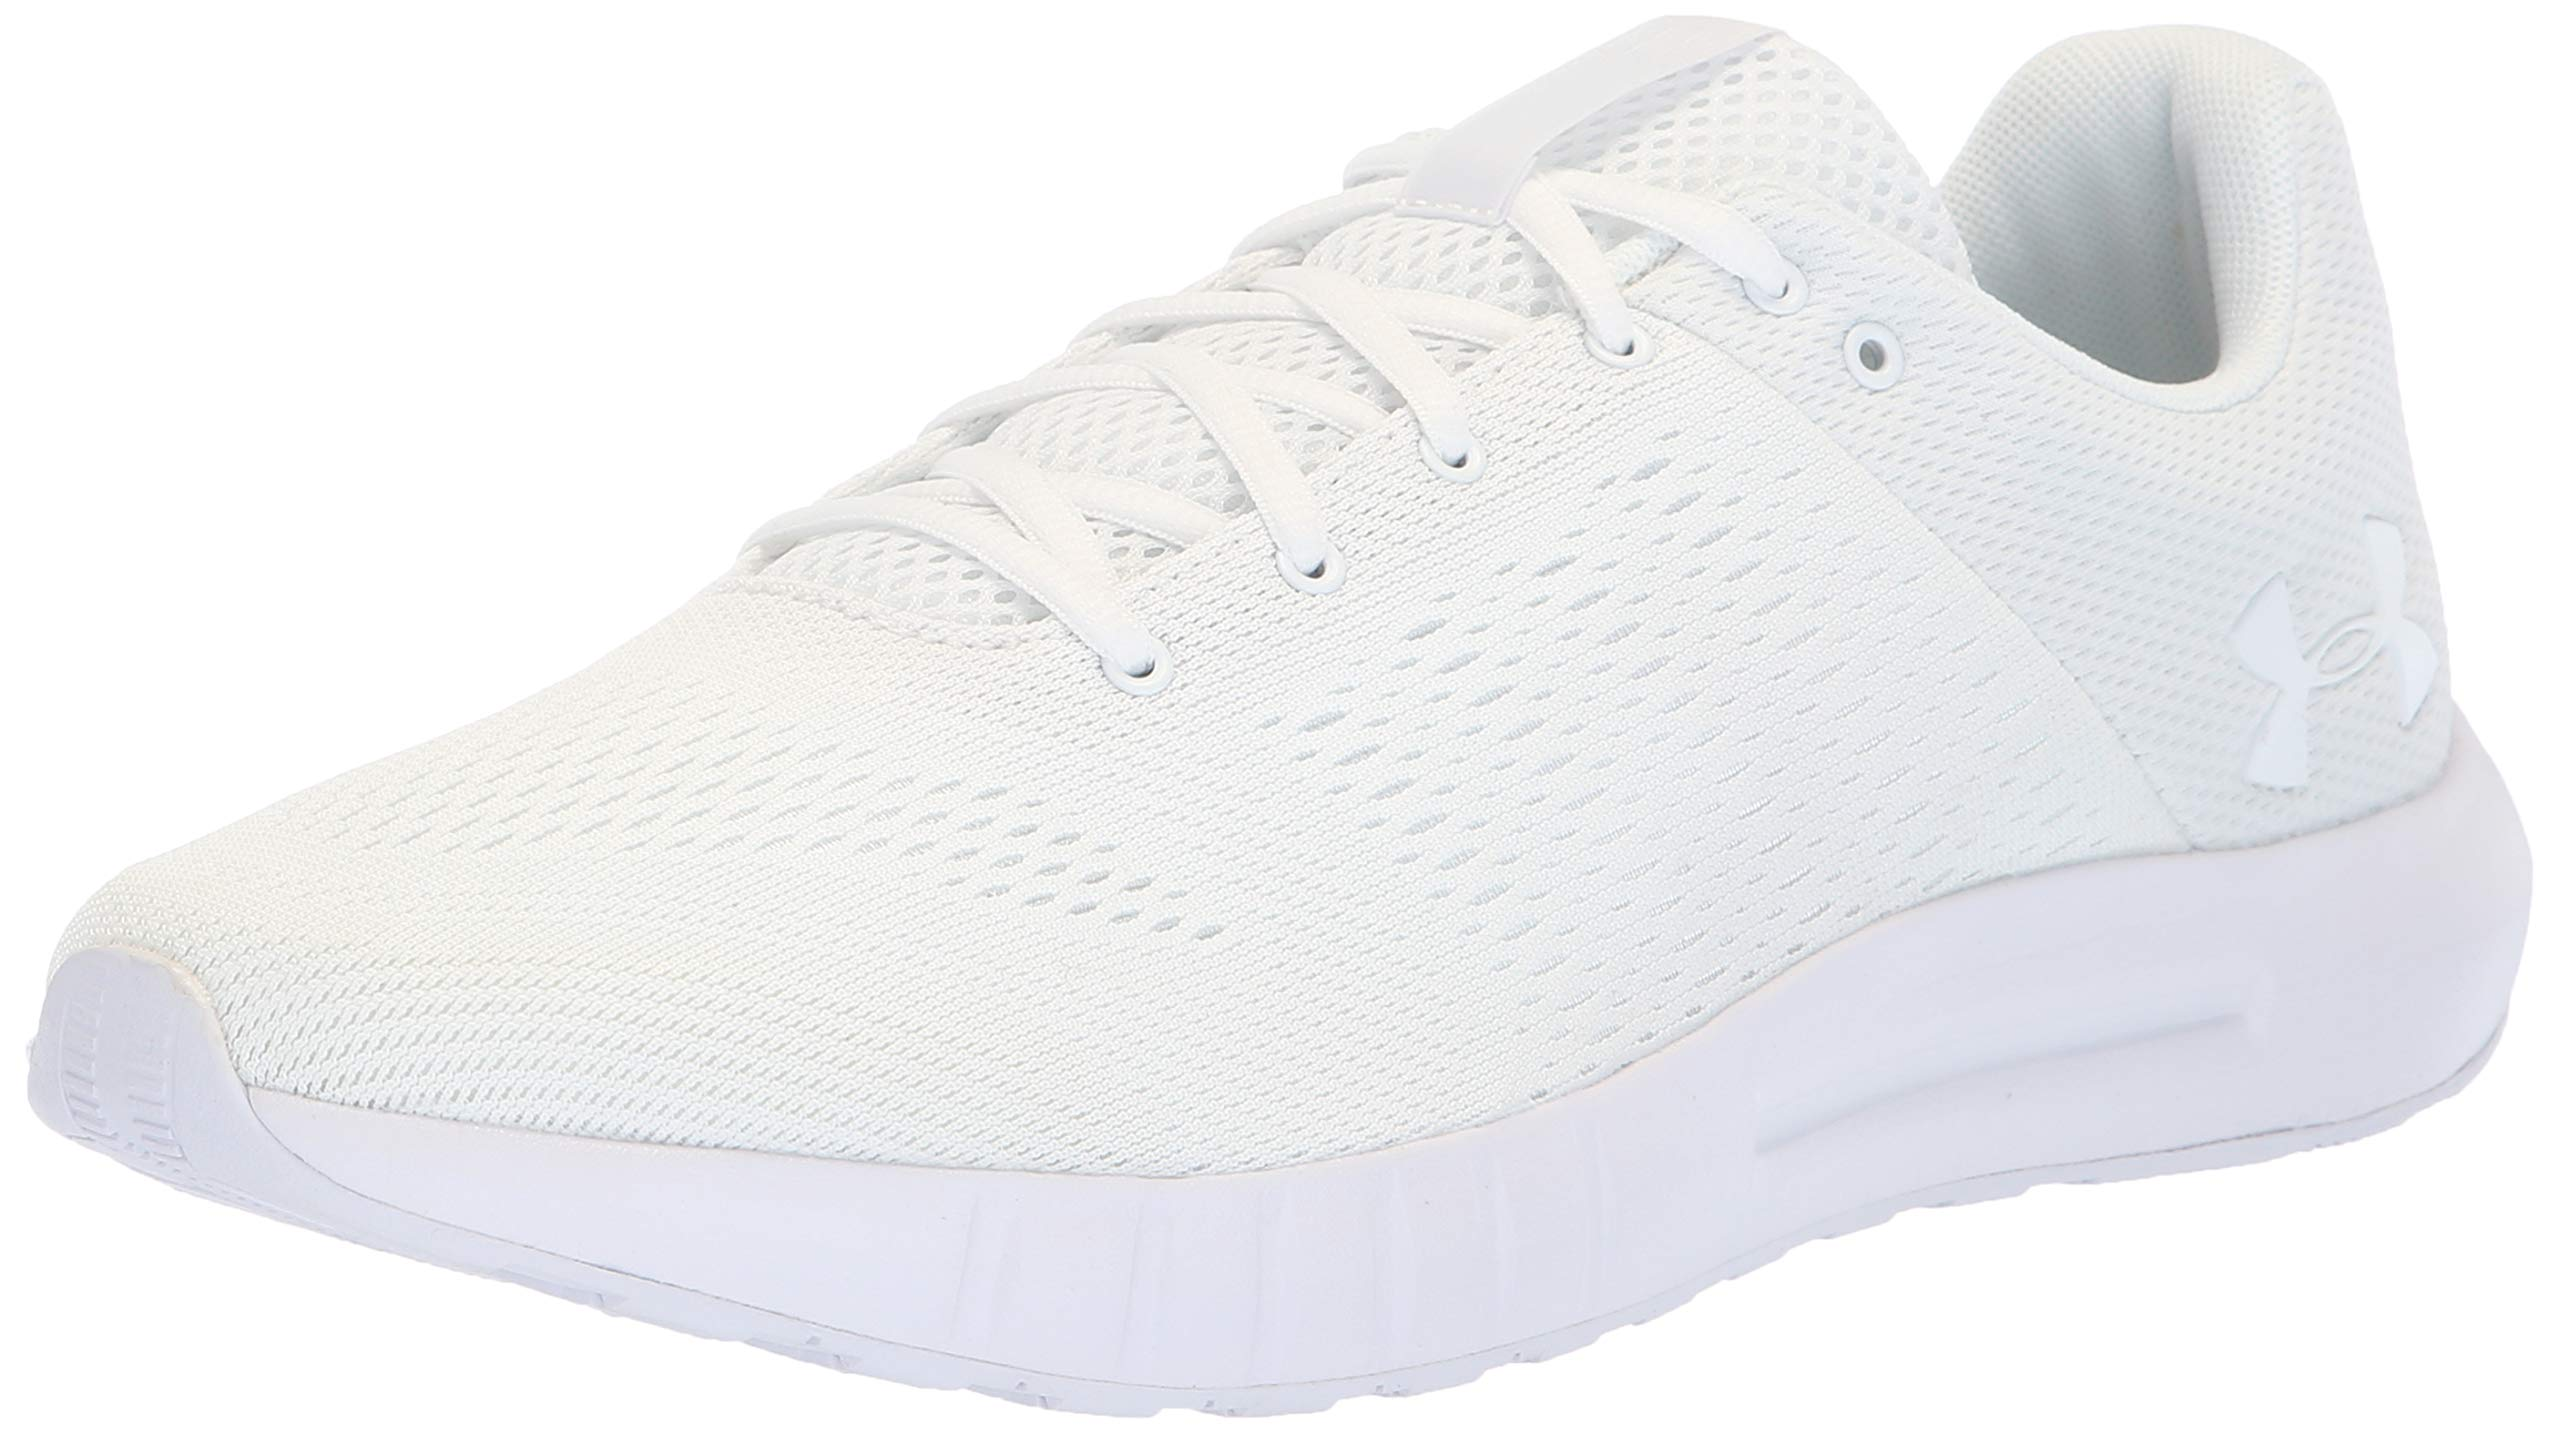 Under Armour mens Micro G Pursuit Running Shoe, White (112)/White, 15 by Under Armour